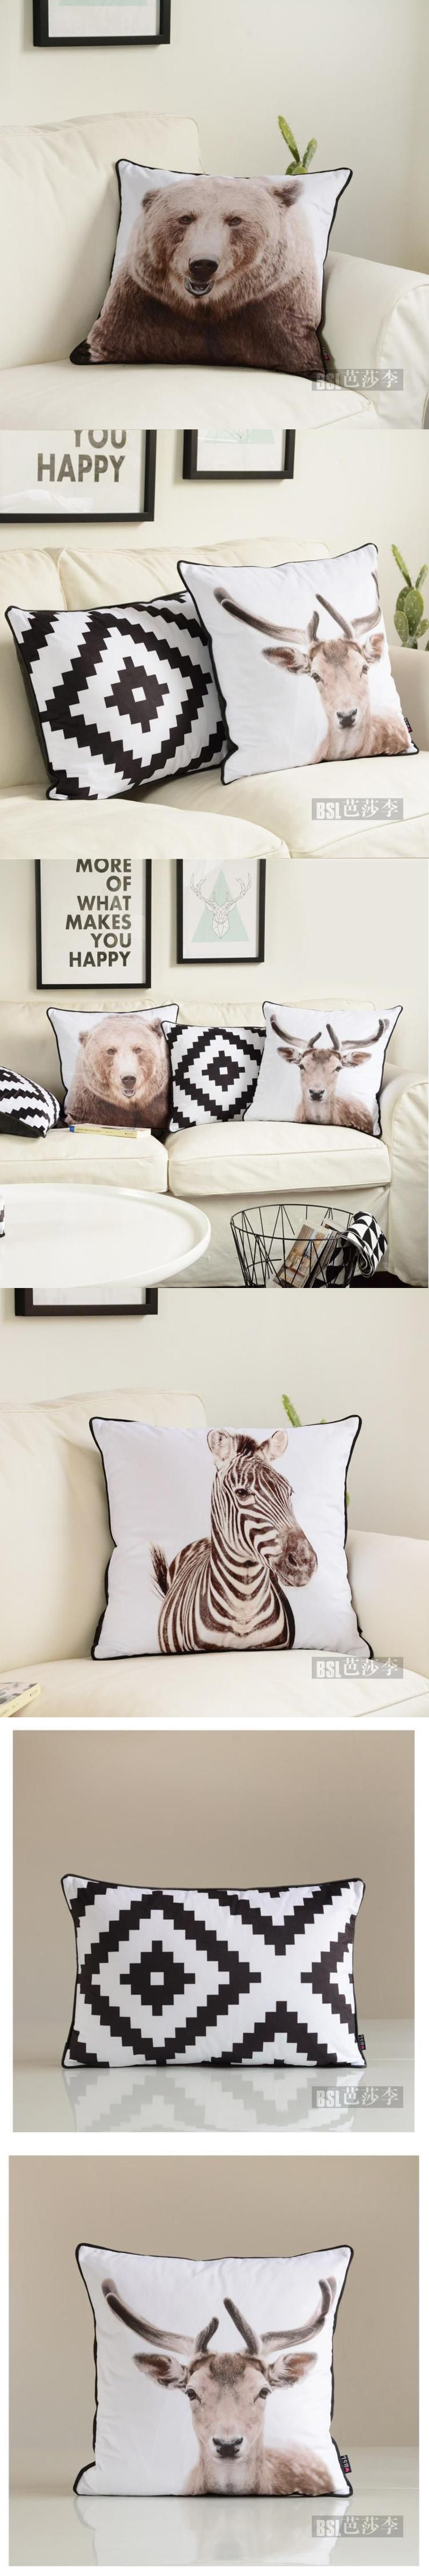 sit up chair reading bed help that decoration pillow l pillows you